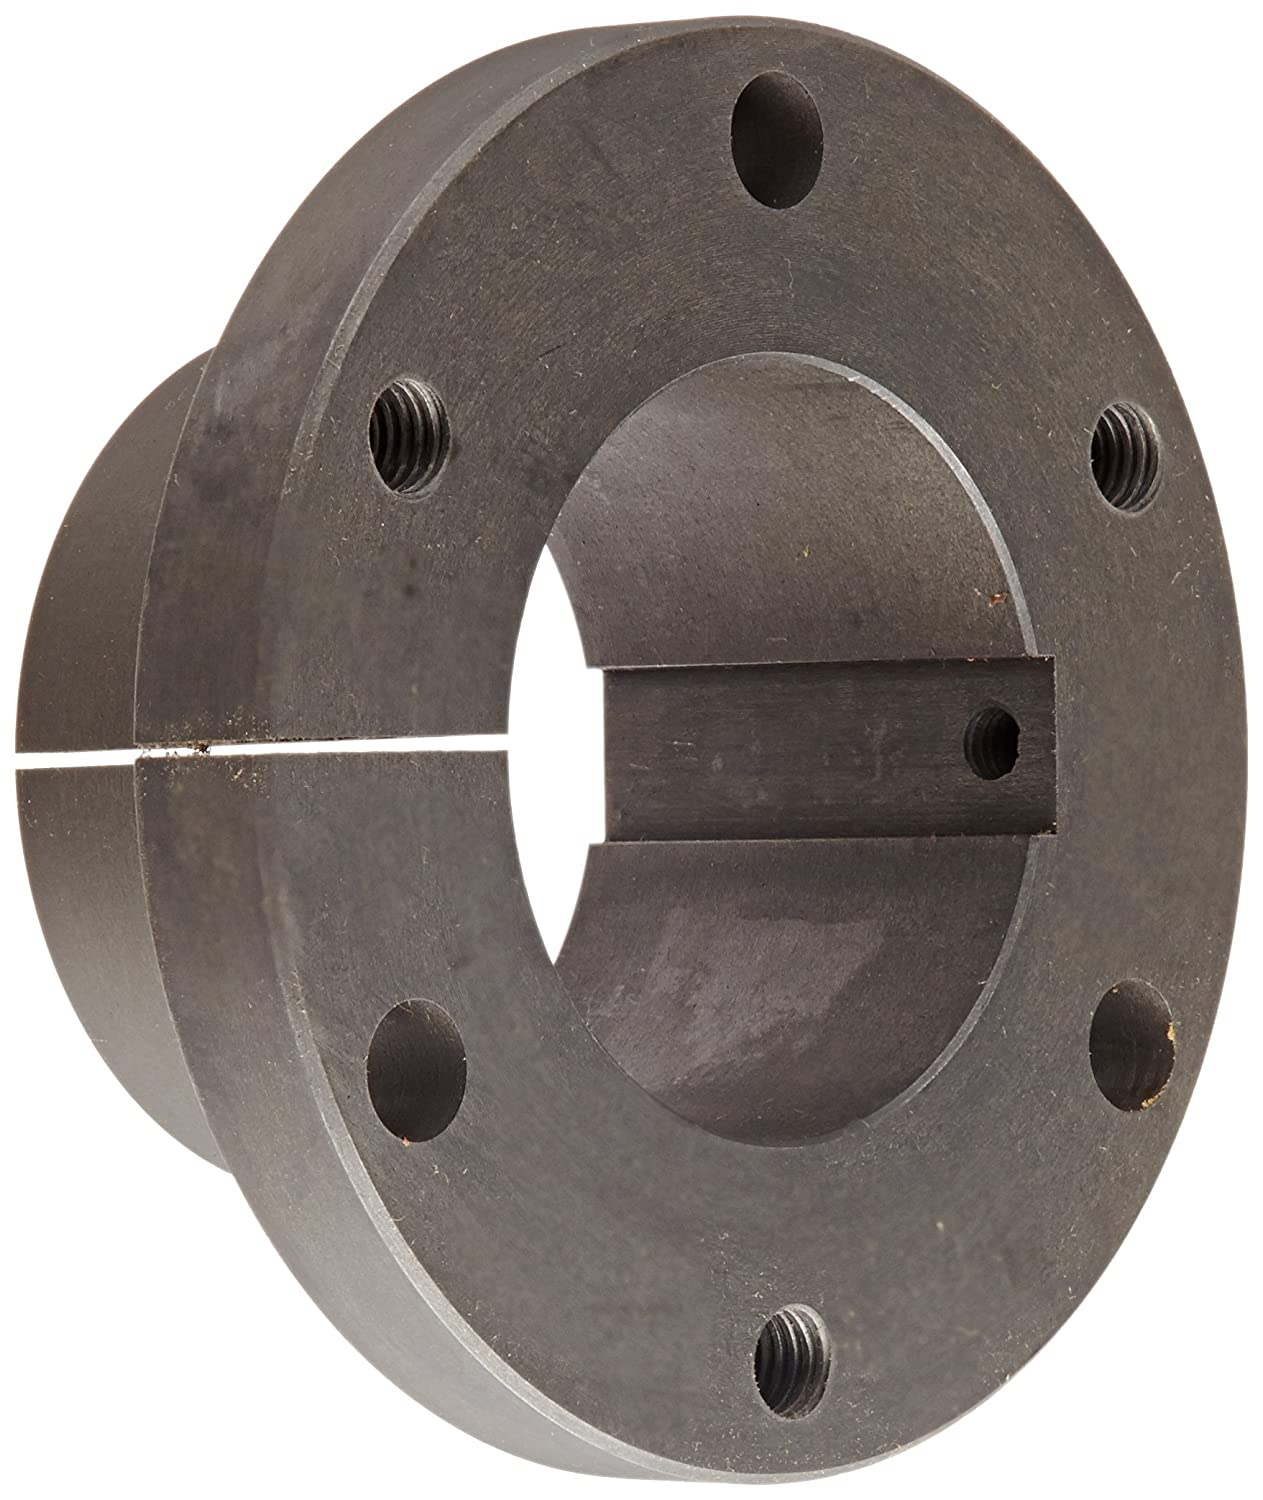 Shallow Keyway Standard Design Inch 2.62 Length 3.1875 Bore 20000 lbs//in Torque 3.834 OD TB Woods Type E E3316 Sure-Grip Bushing Cast Iron